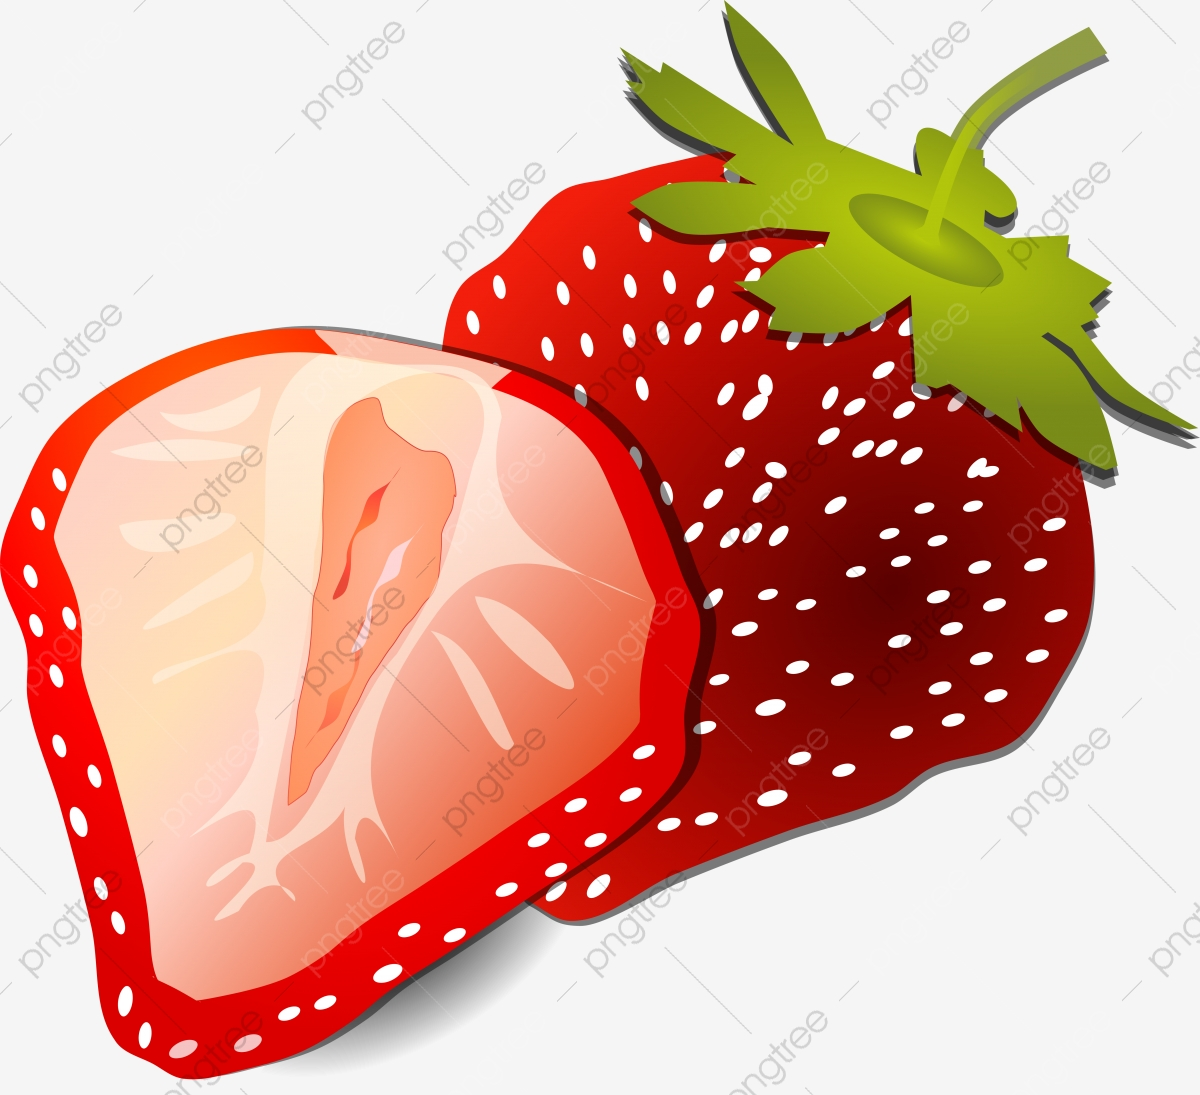 Semi Realistic Half Cartoon White Seed Strawberry Half Strawberry Whole Strawberry Dark Red Strawberry Strawberry Season Png And Vector With Transparent Background For Free Download